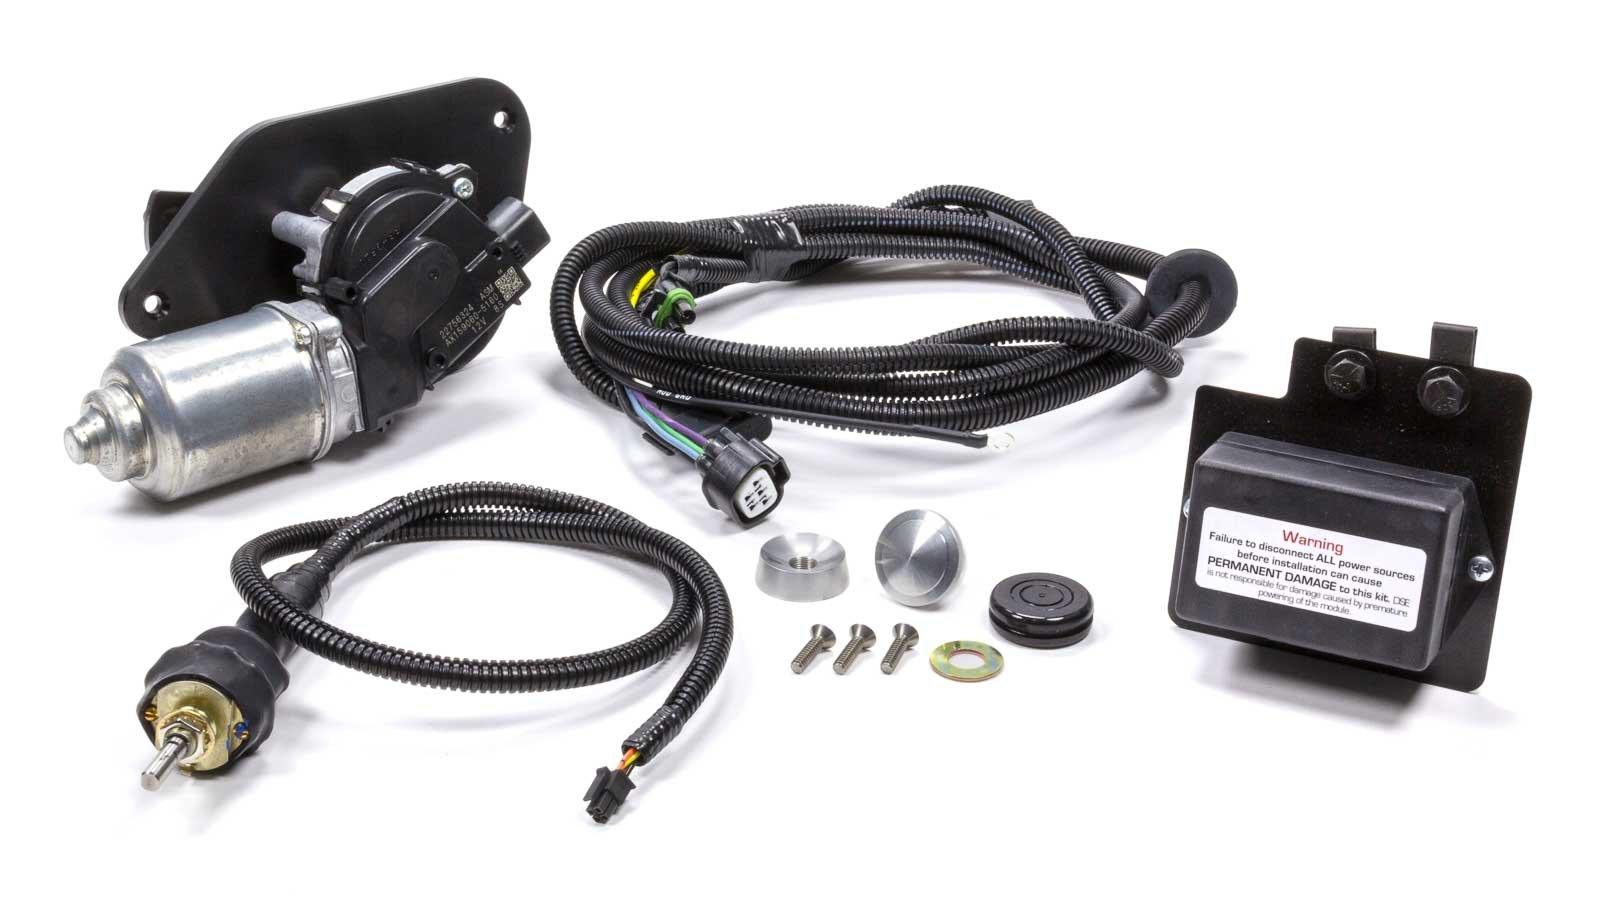 Detroit Speed 121301 Selecta-Speed Wiper Kit